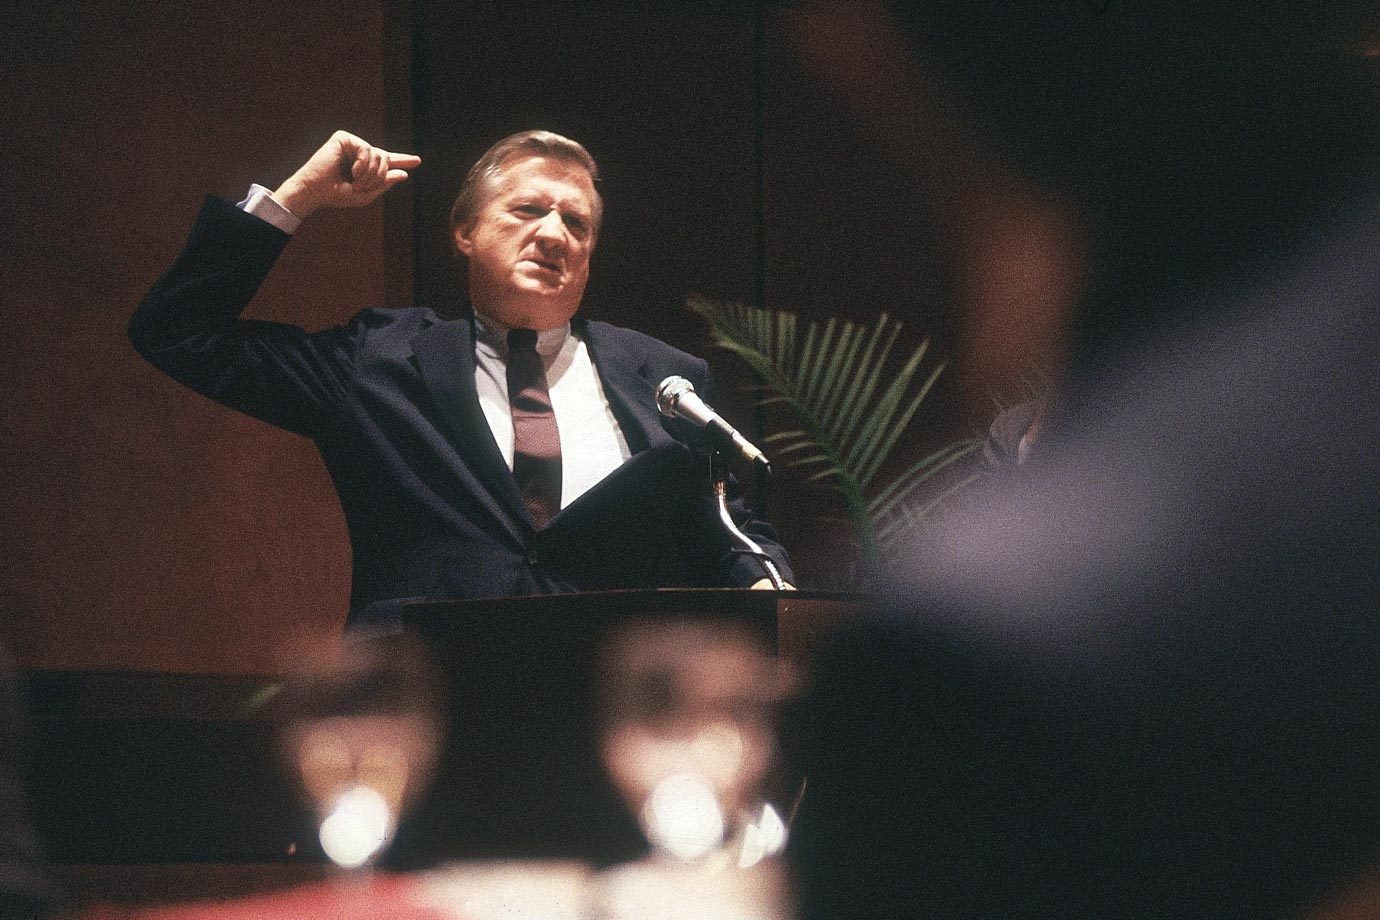 George Steinbrenner speaks at an ABA Breakfast on April 27, 1990 in New York City.